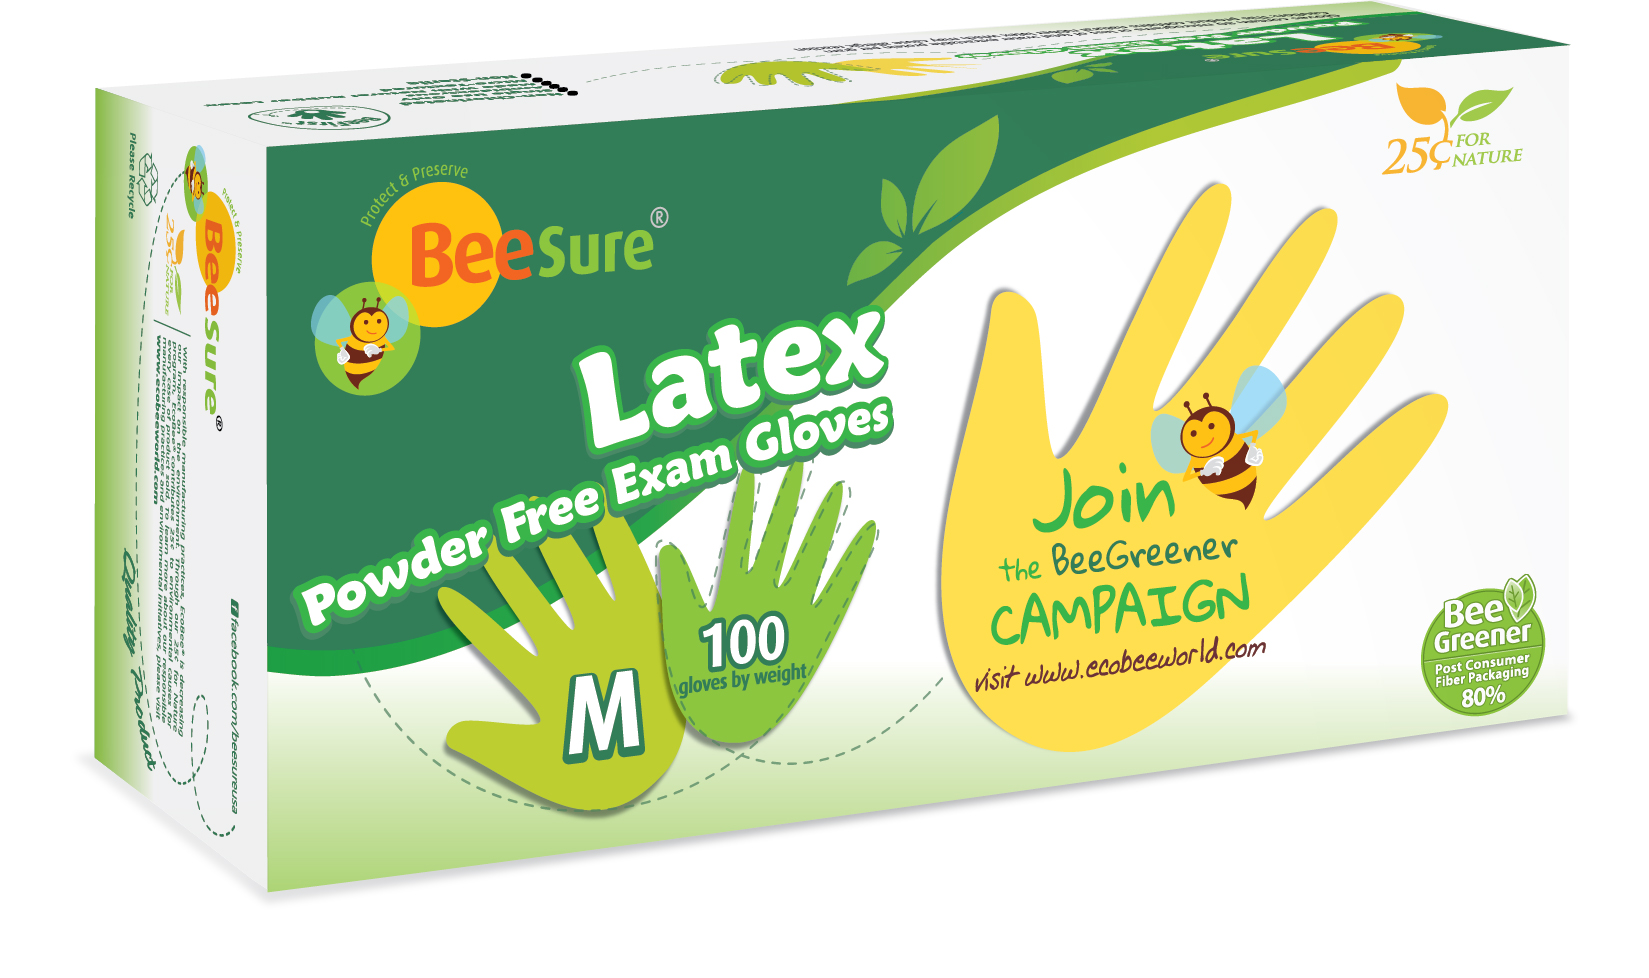 BeeSure Latex Exam Gloves